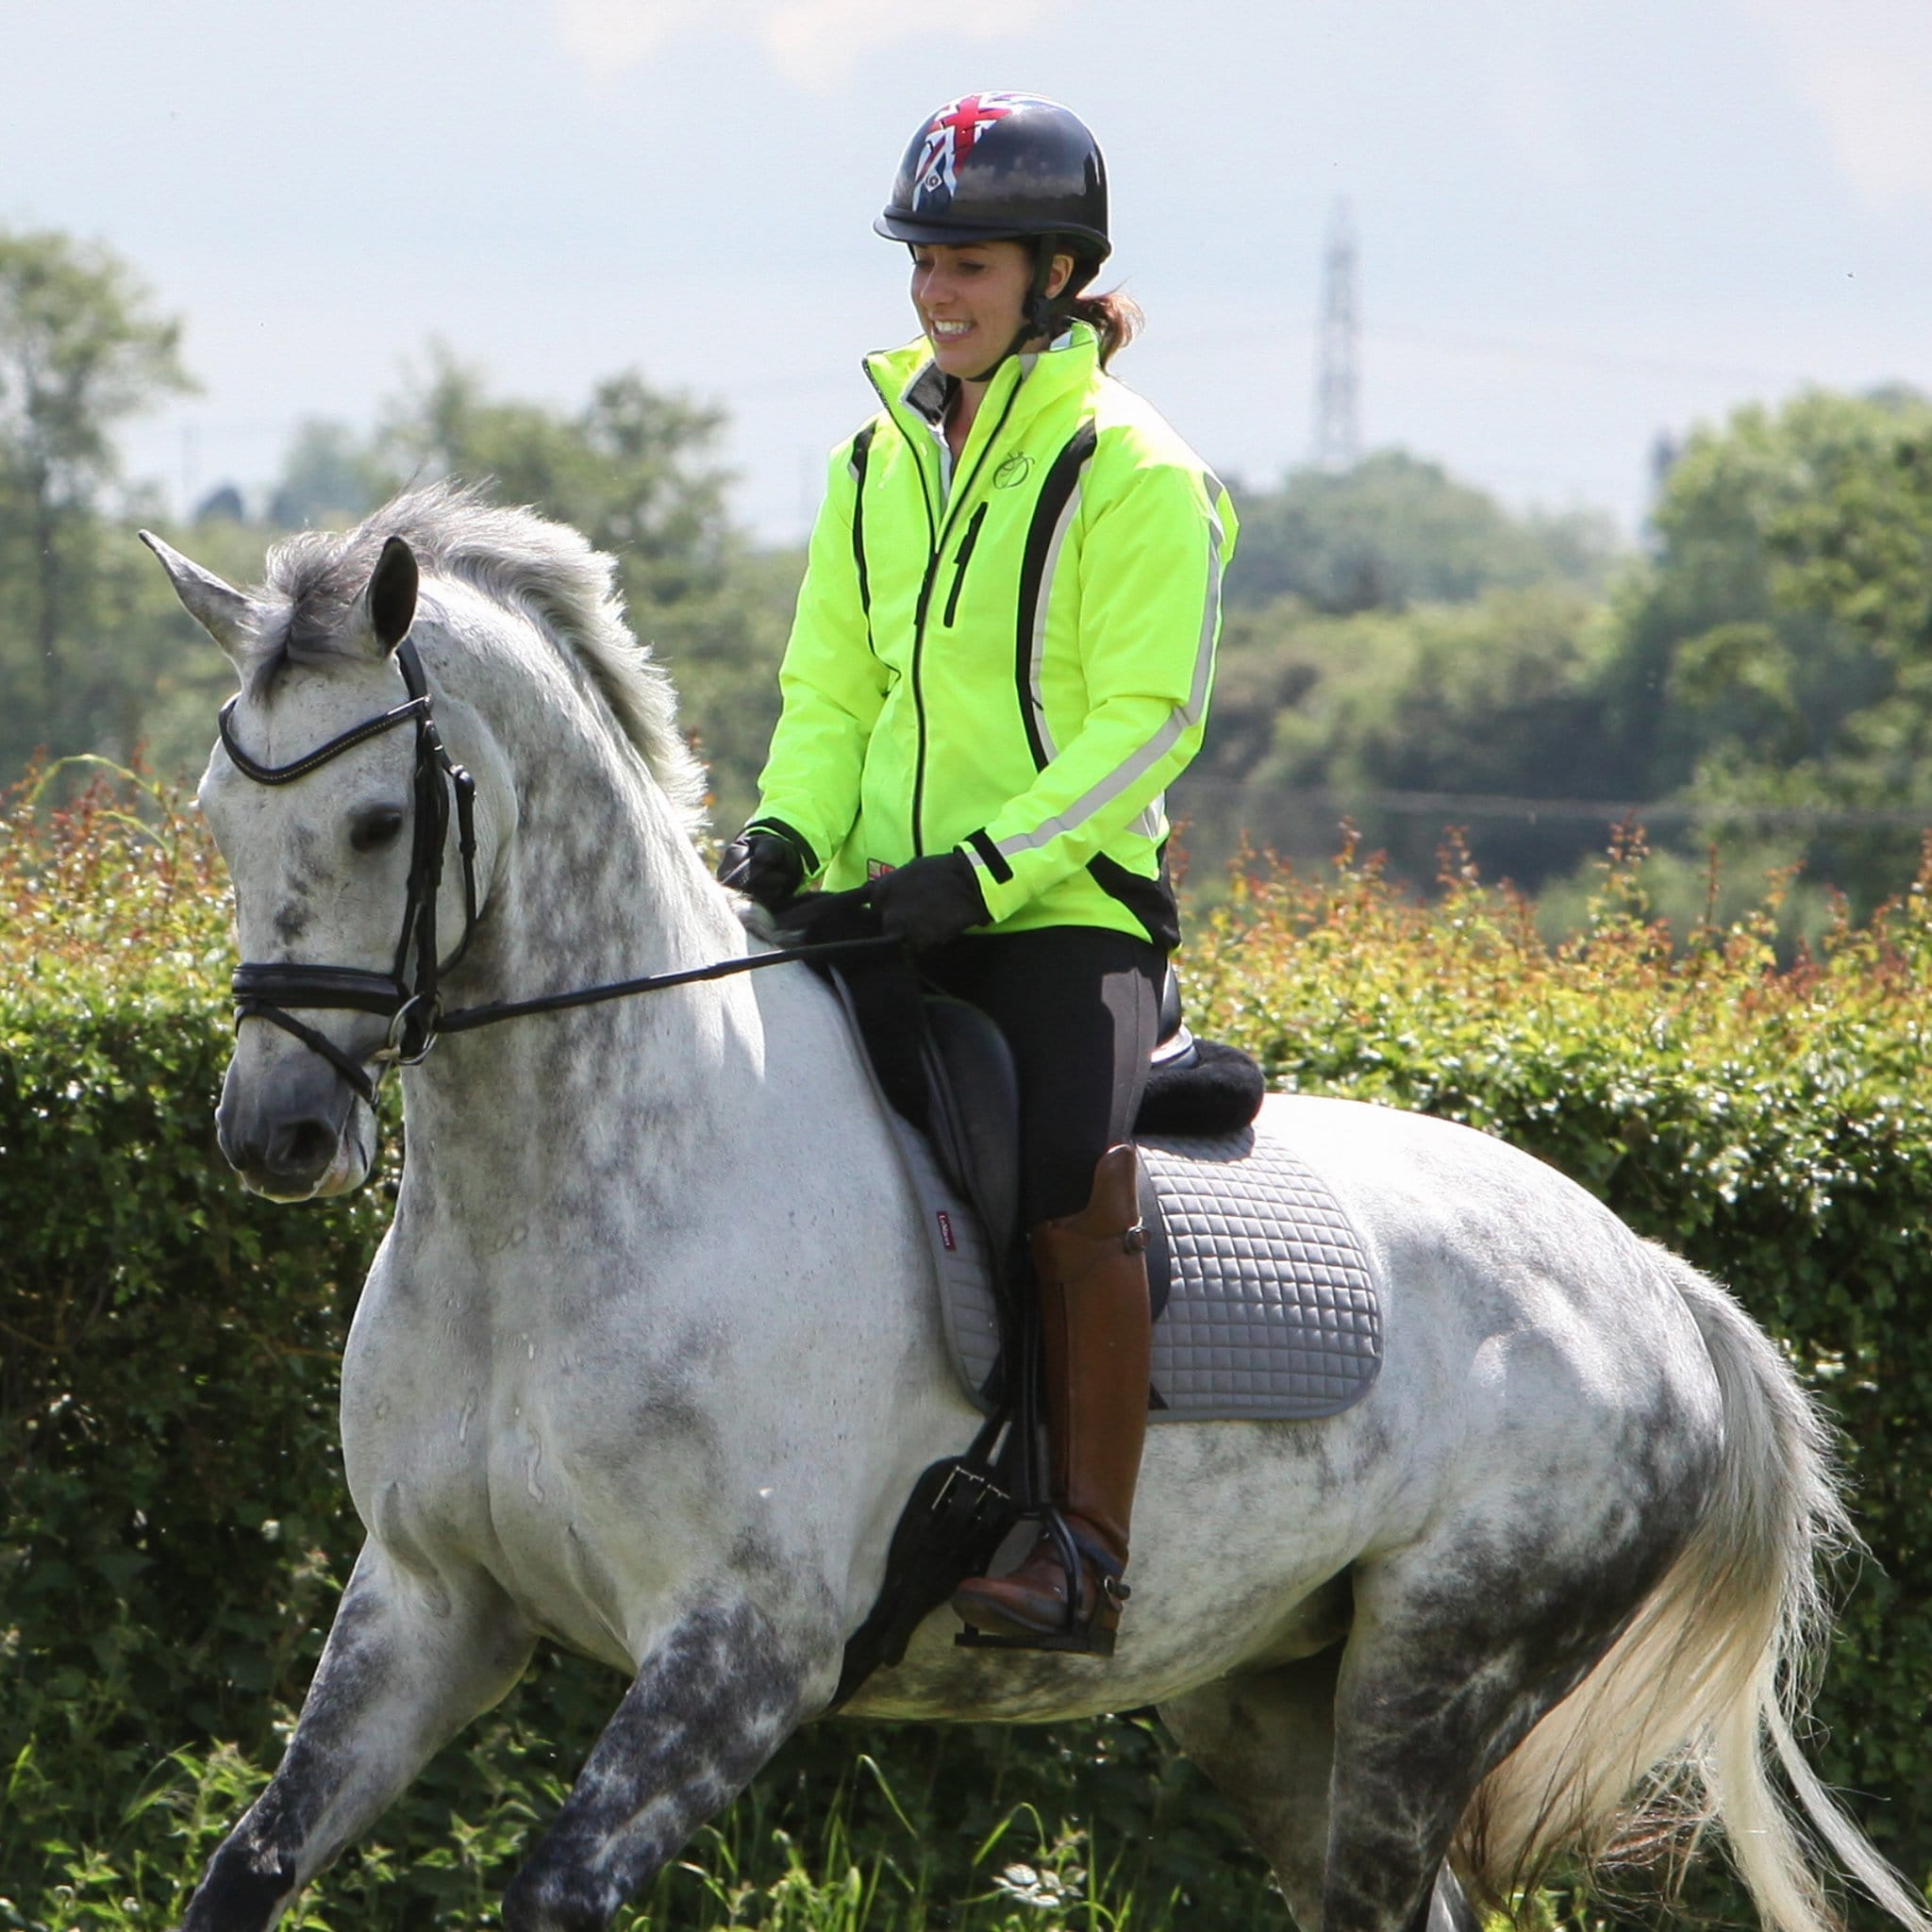 Equisafety Charlotte Dujardin Cadence High Visibility Jacket CY6 Yellow Rider Cantering